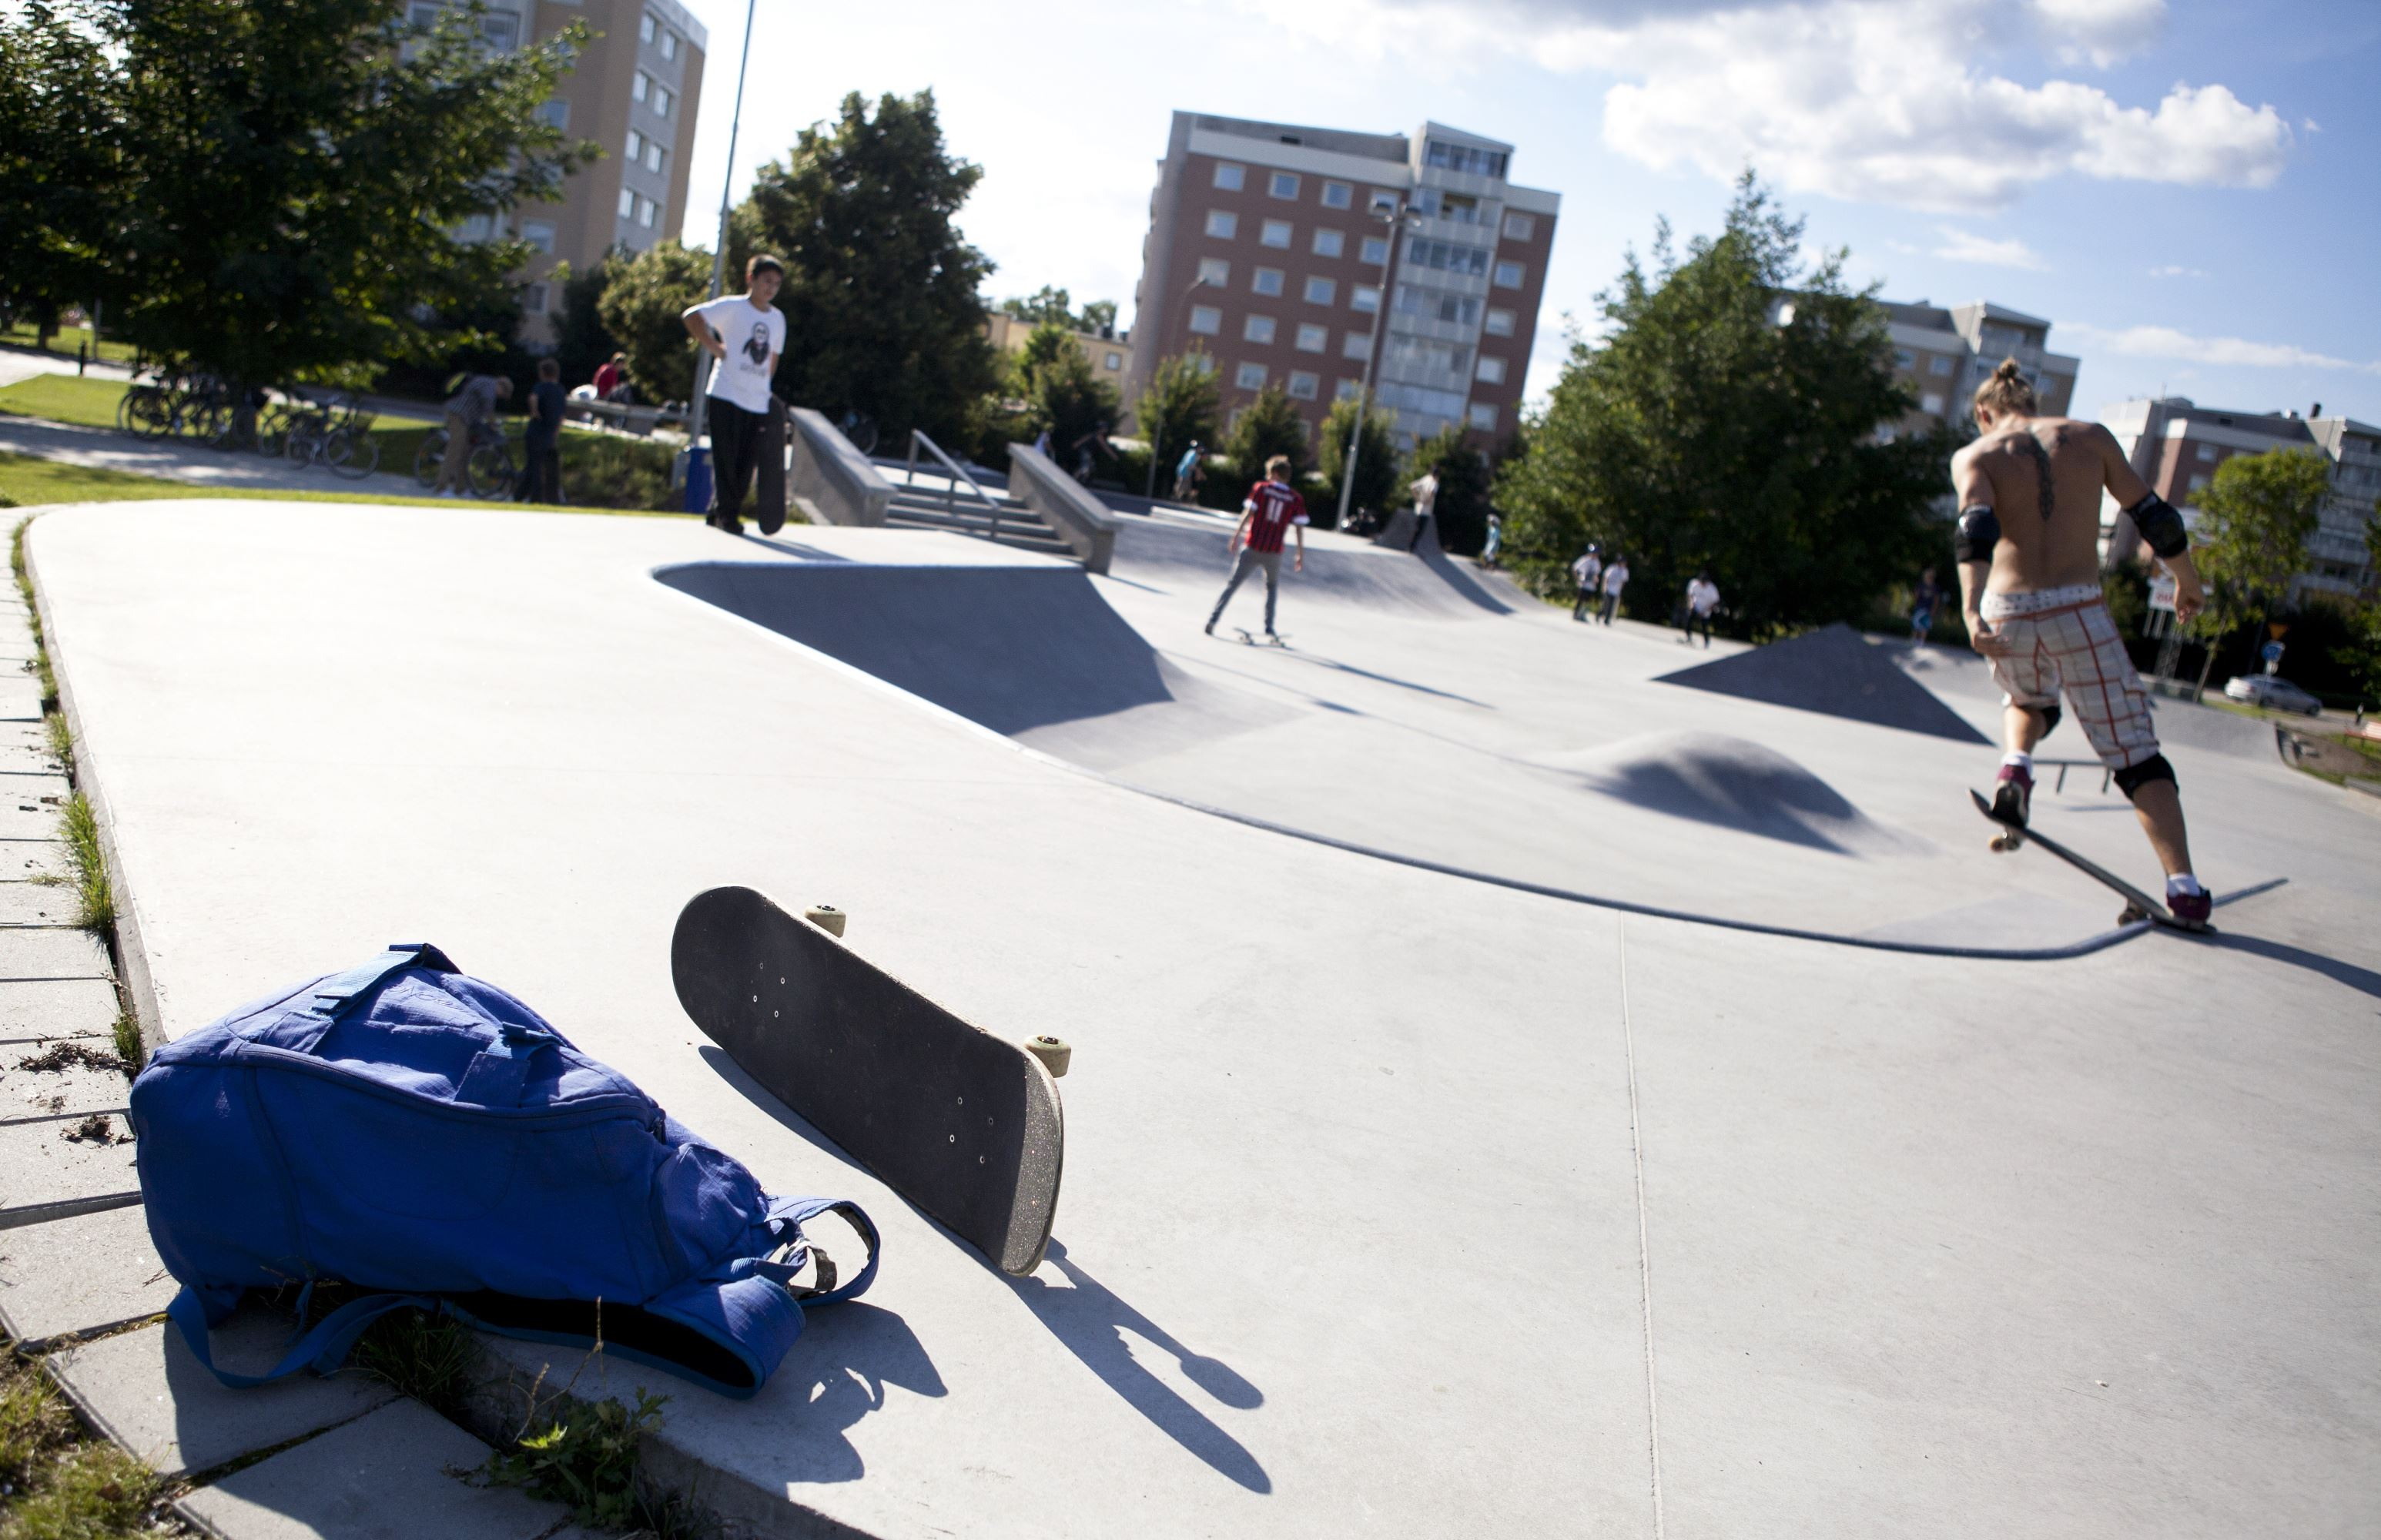 Tomas Magnusson, The skate park at Spetsamossen